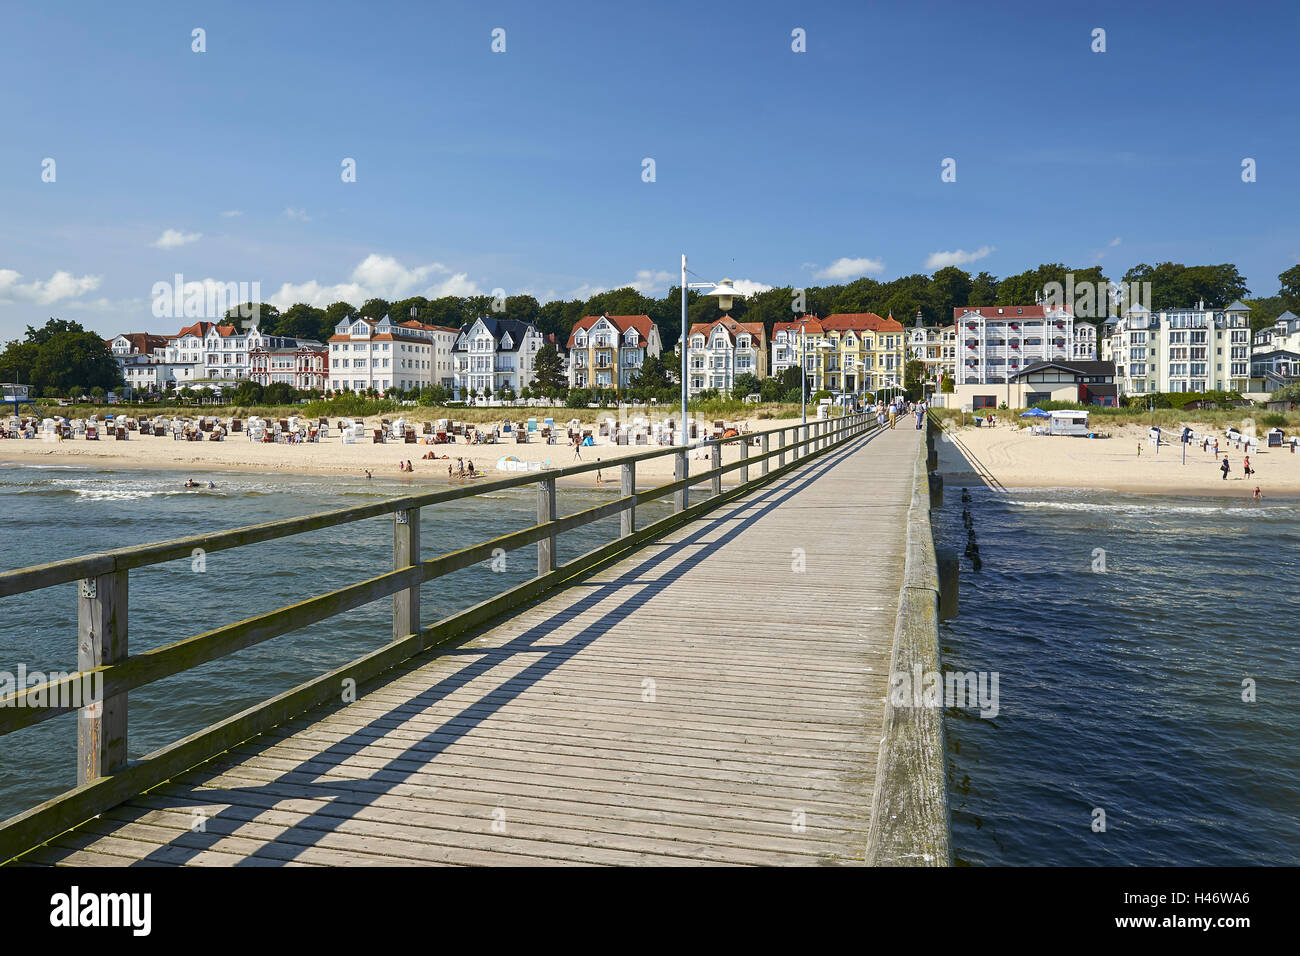 Pier, Baltic Sea resort of Bansin, Usedom, Mecklenburg Western Pomerania, Germany Stock Photo